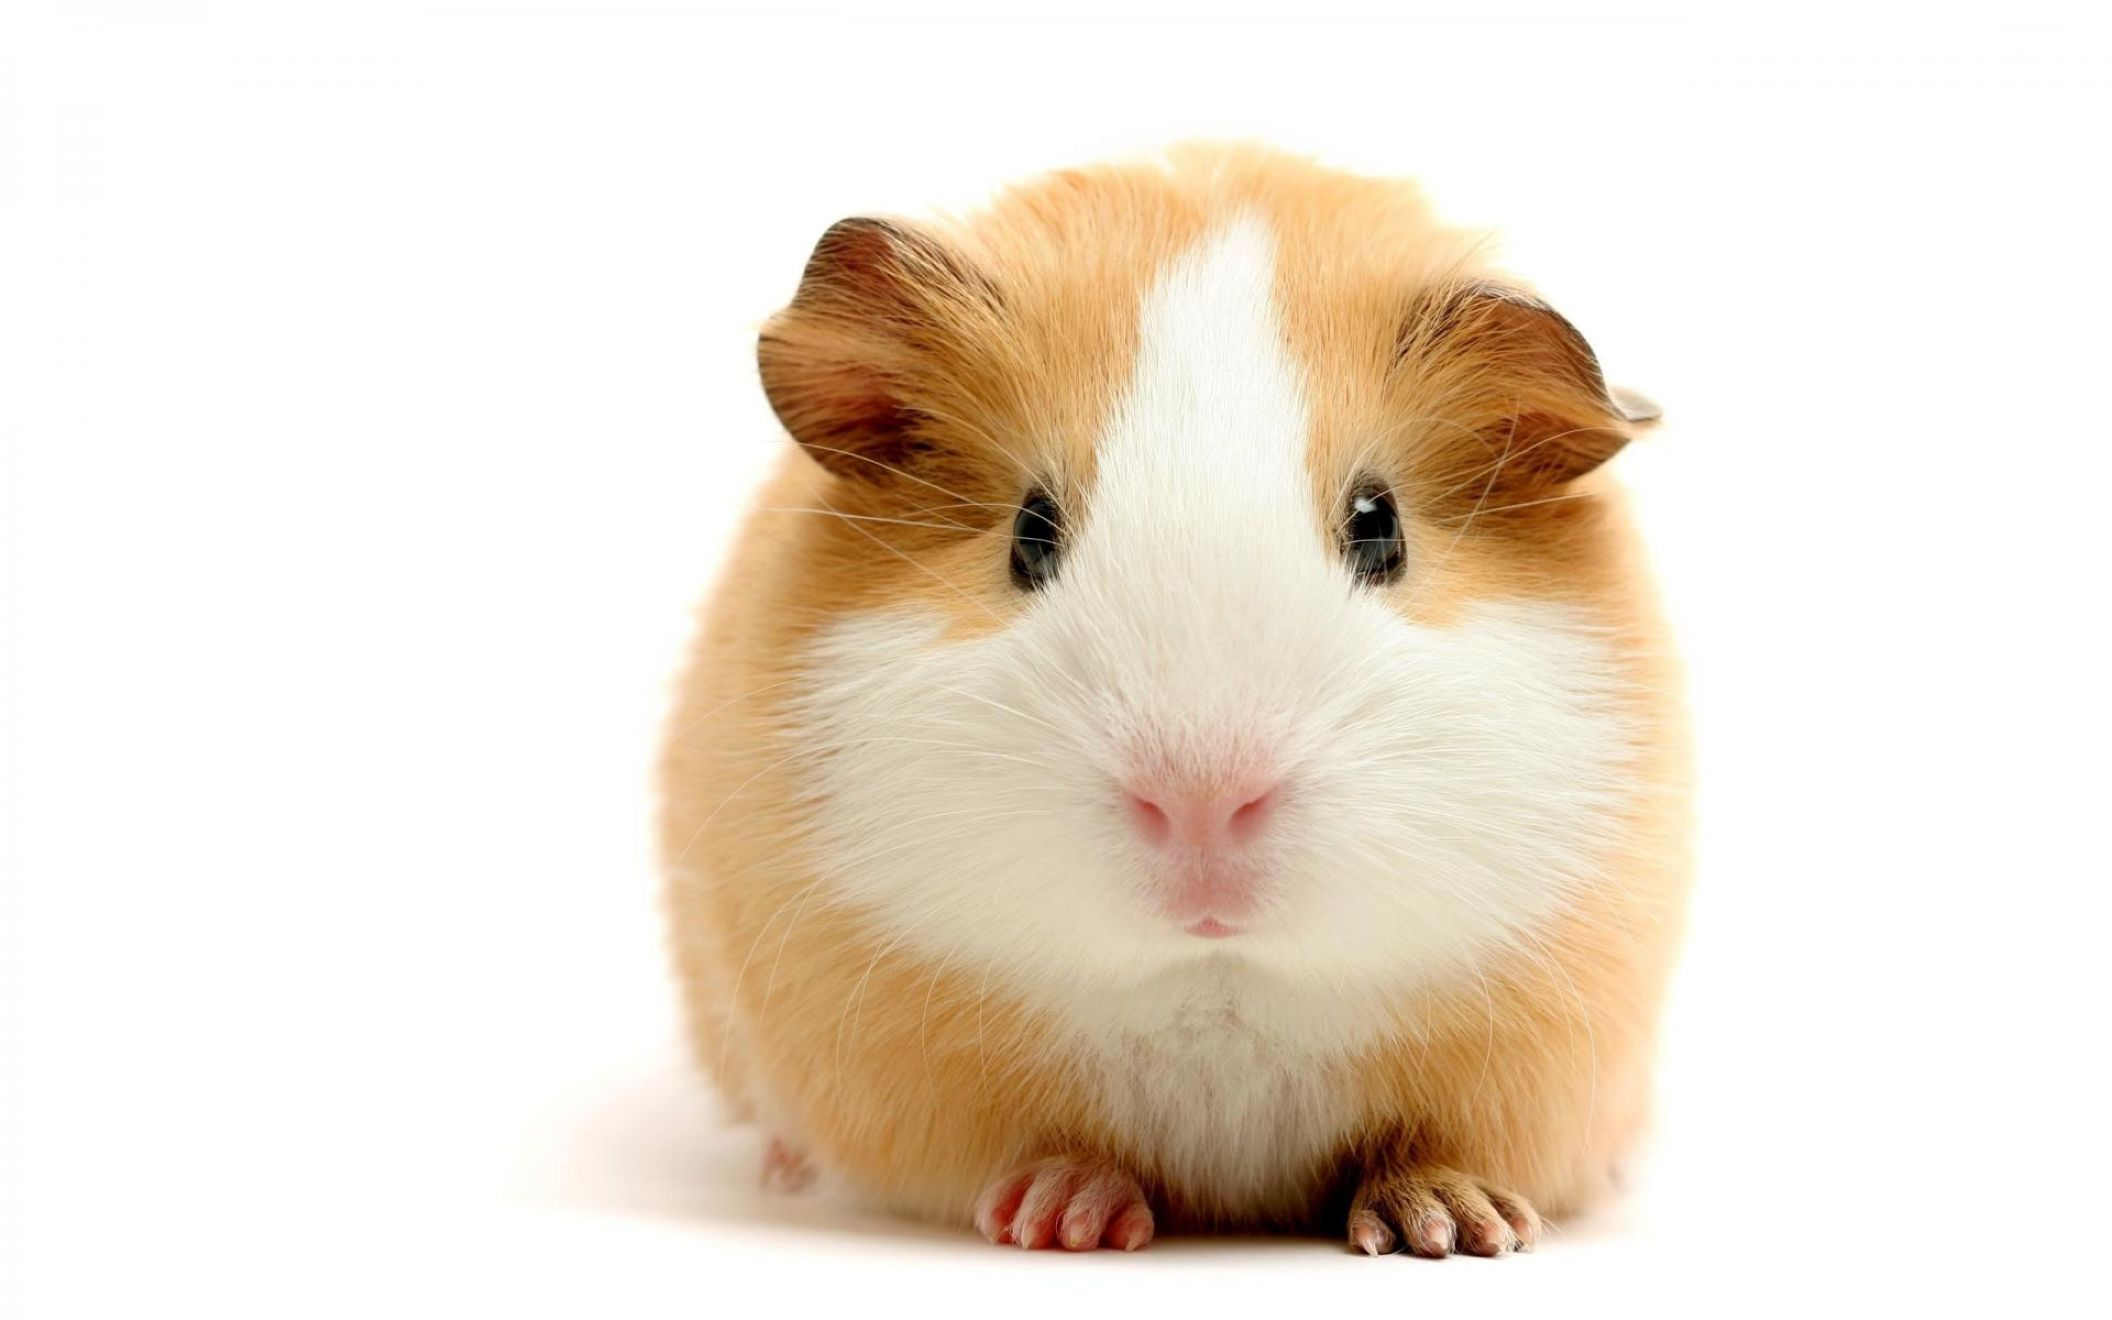 Download free HD Cute Hamster Computer Wallpaper, image